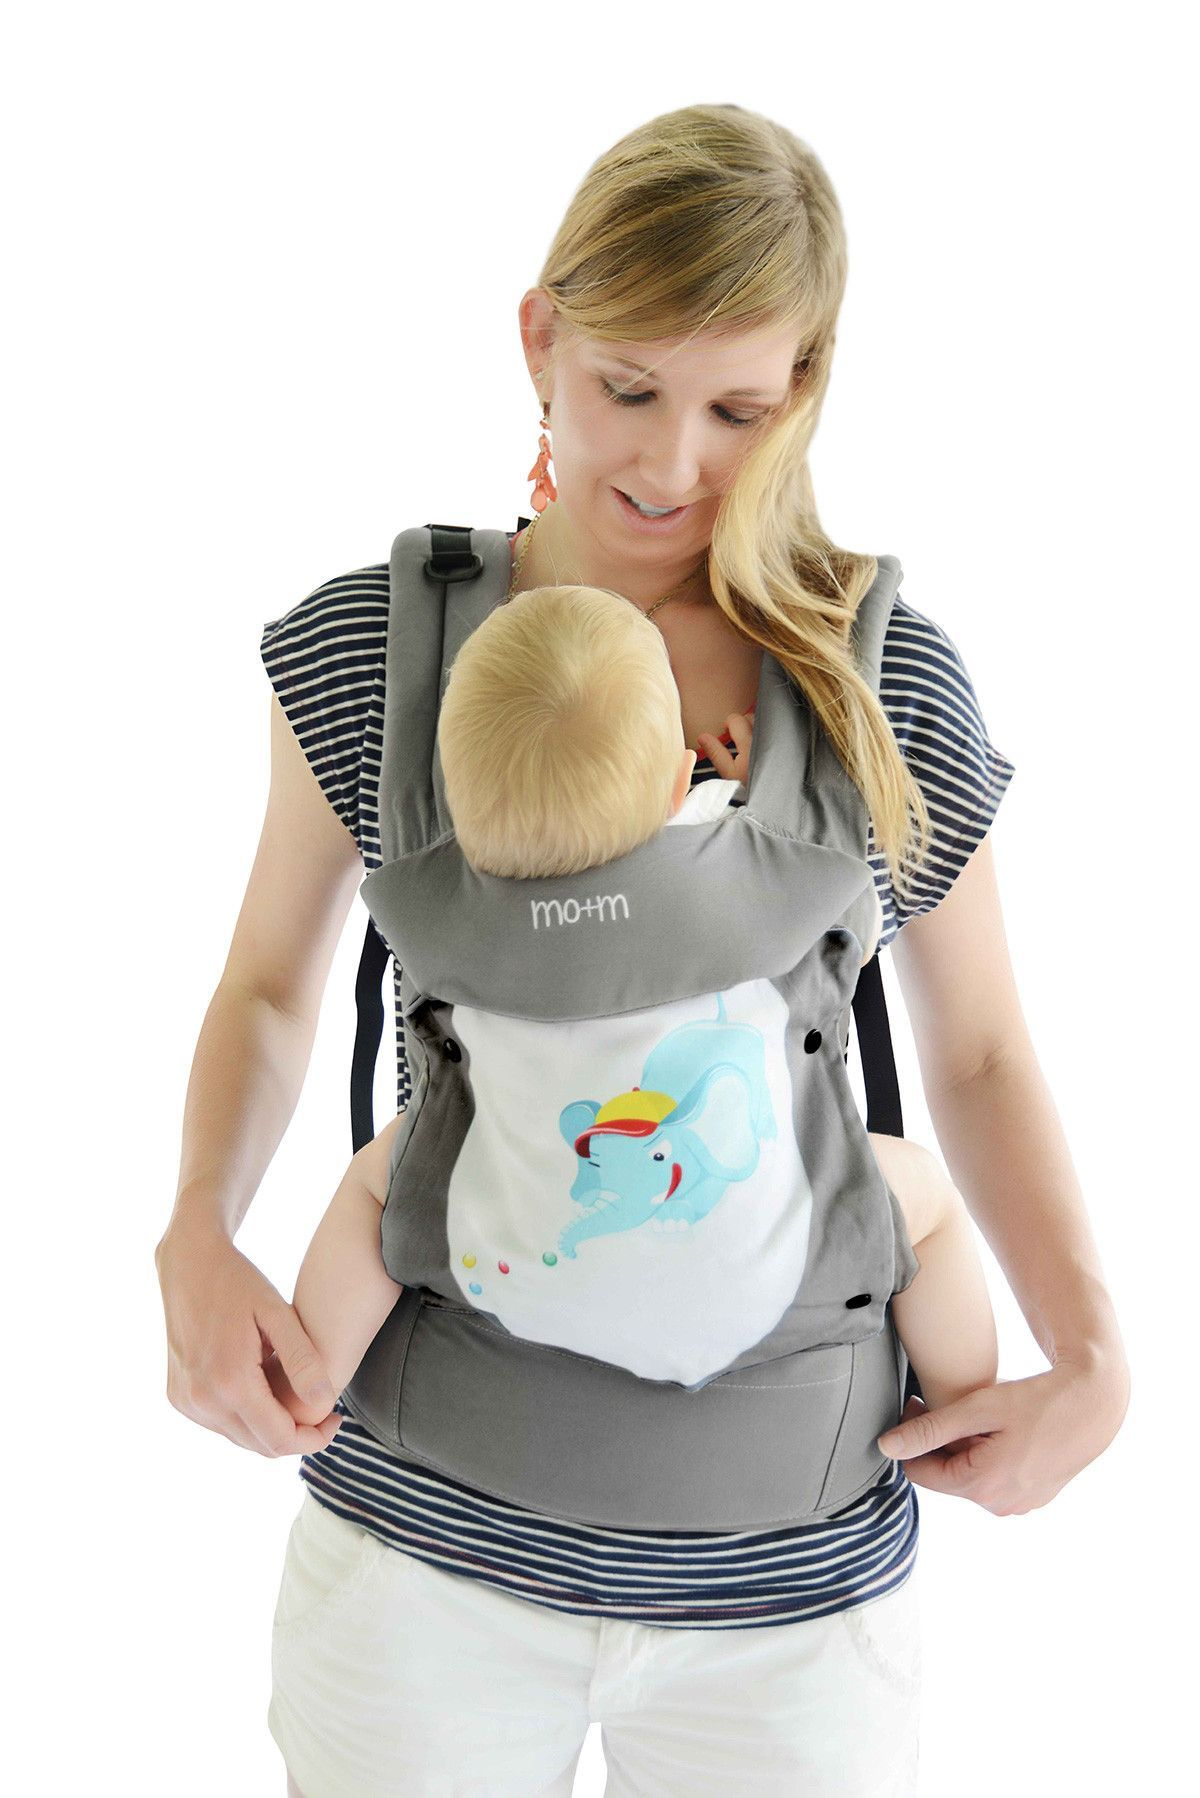 Baby Wrap from Newborn to Toddler Baby Carrier Backpack Baby Wrap Carrier Hip seat Baby Carrier for Infants up to 44lbs//20kg Suitable for Both Moms and Dads Ergonomic Baby Sling Carrier Bag